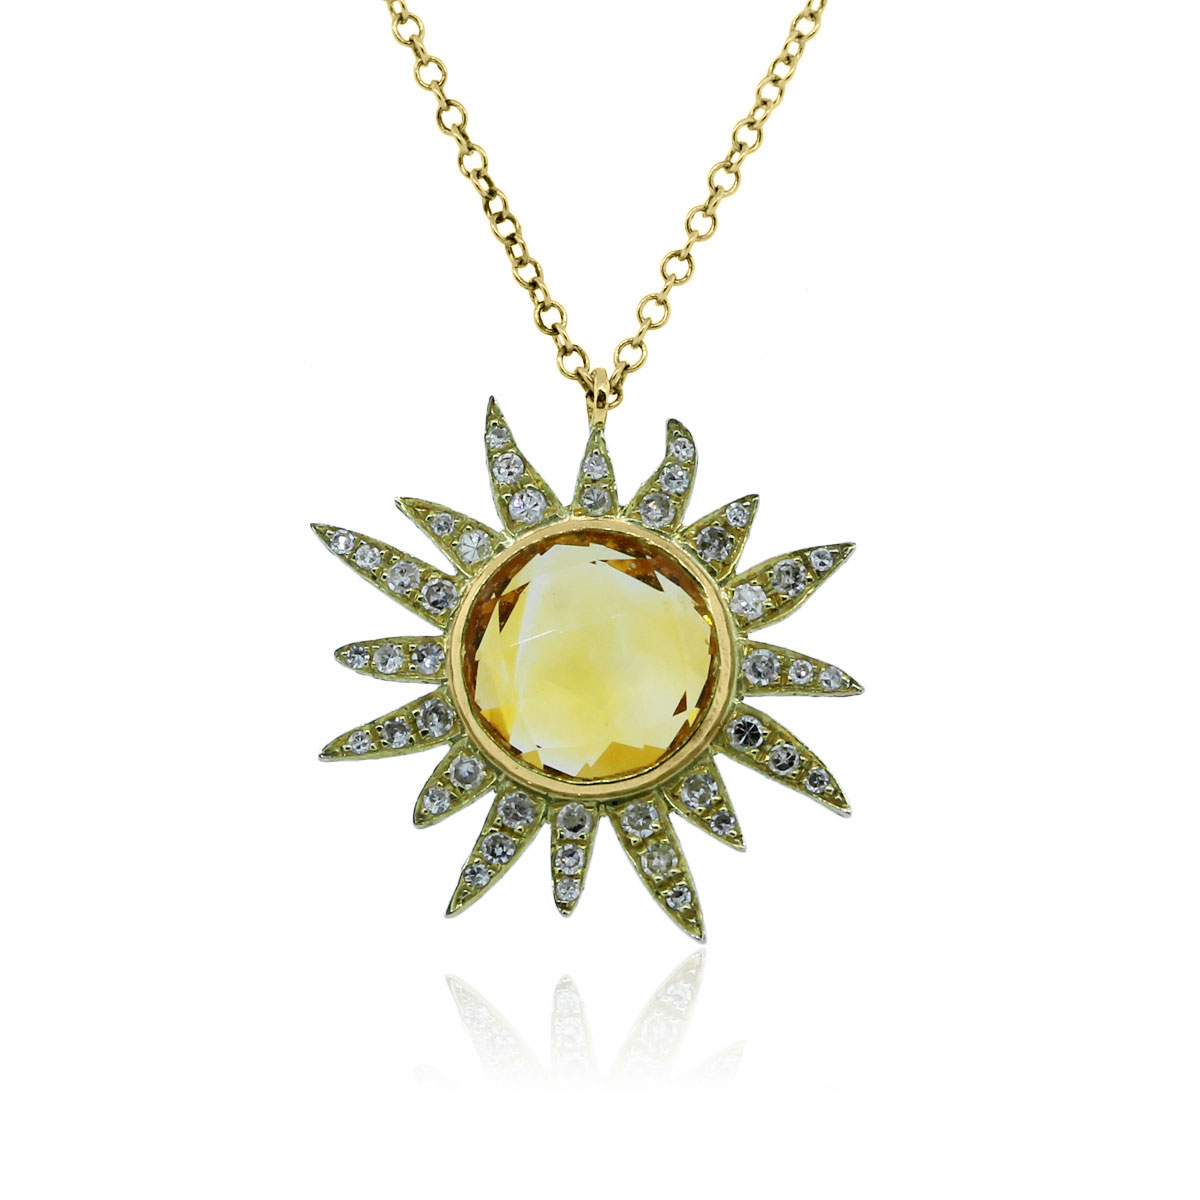 Meira T 14k Yellow Gold Citrine Amp Diamonds Sun Necklace